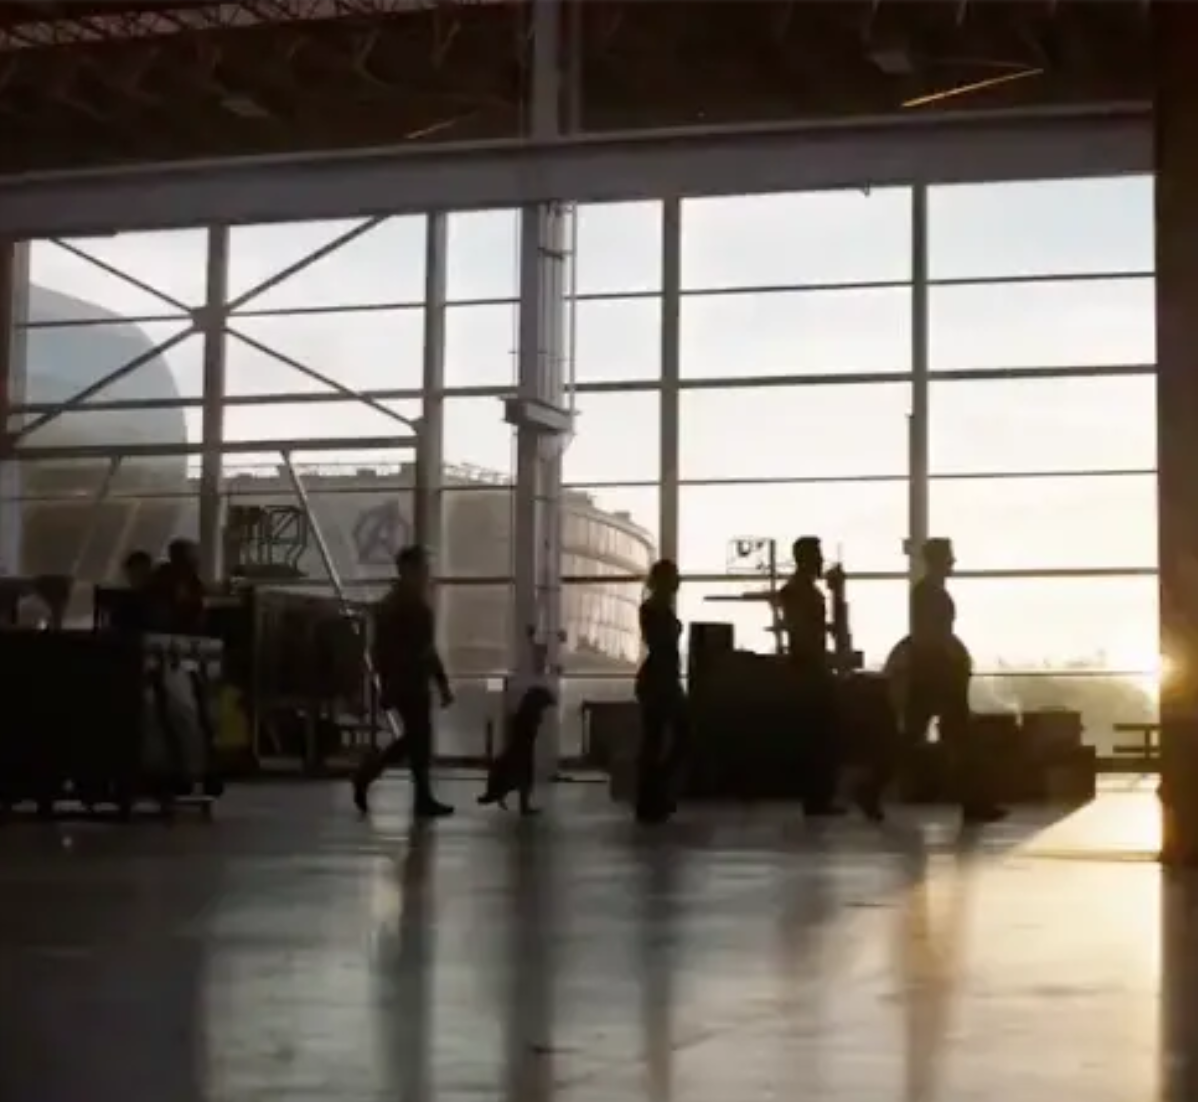 It might not be a clear shot but this is the remaining Avengers getting ready for battle. Credit: Marvel/Disney